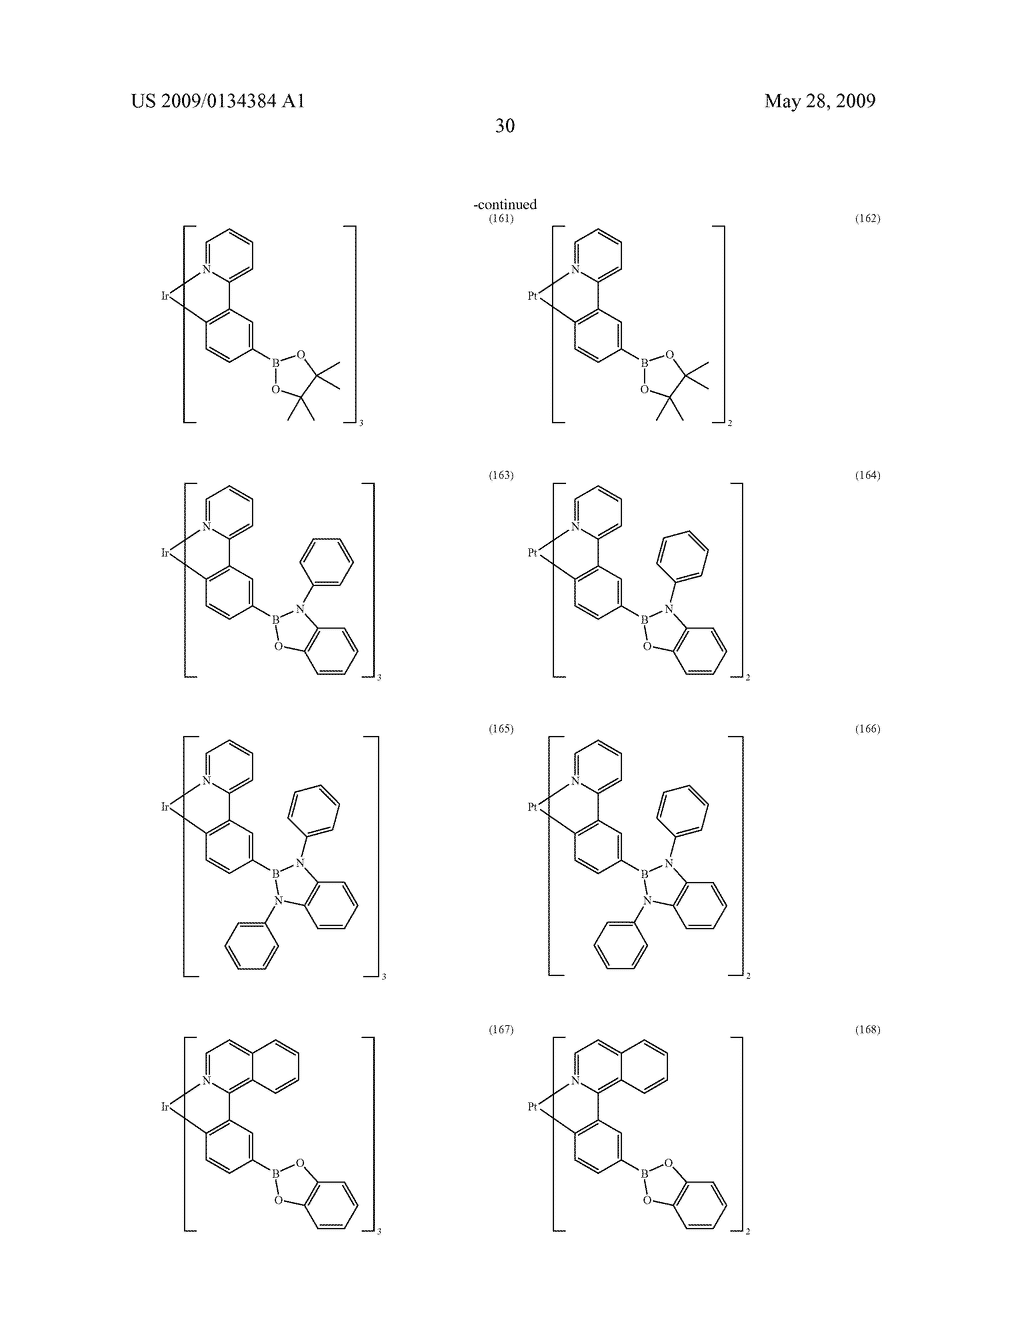 ORGANIC ELECTROLUMINESCENT DEVICE AND BORIC ACID AND BORINIC ACID DERIVATIVES USED THEREIN - diagram, schematic, and image 32